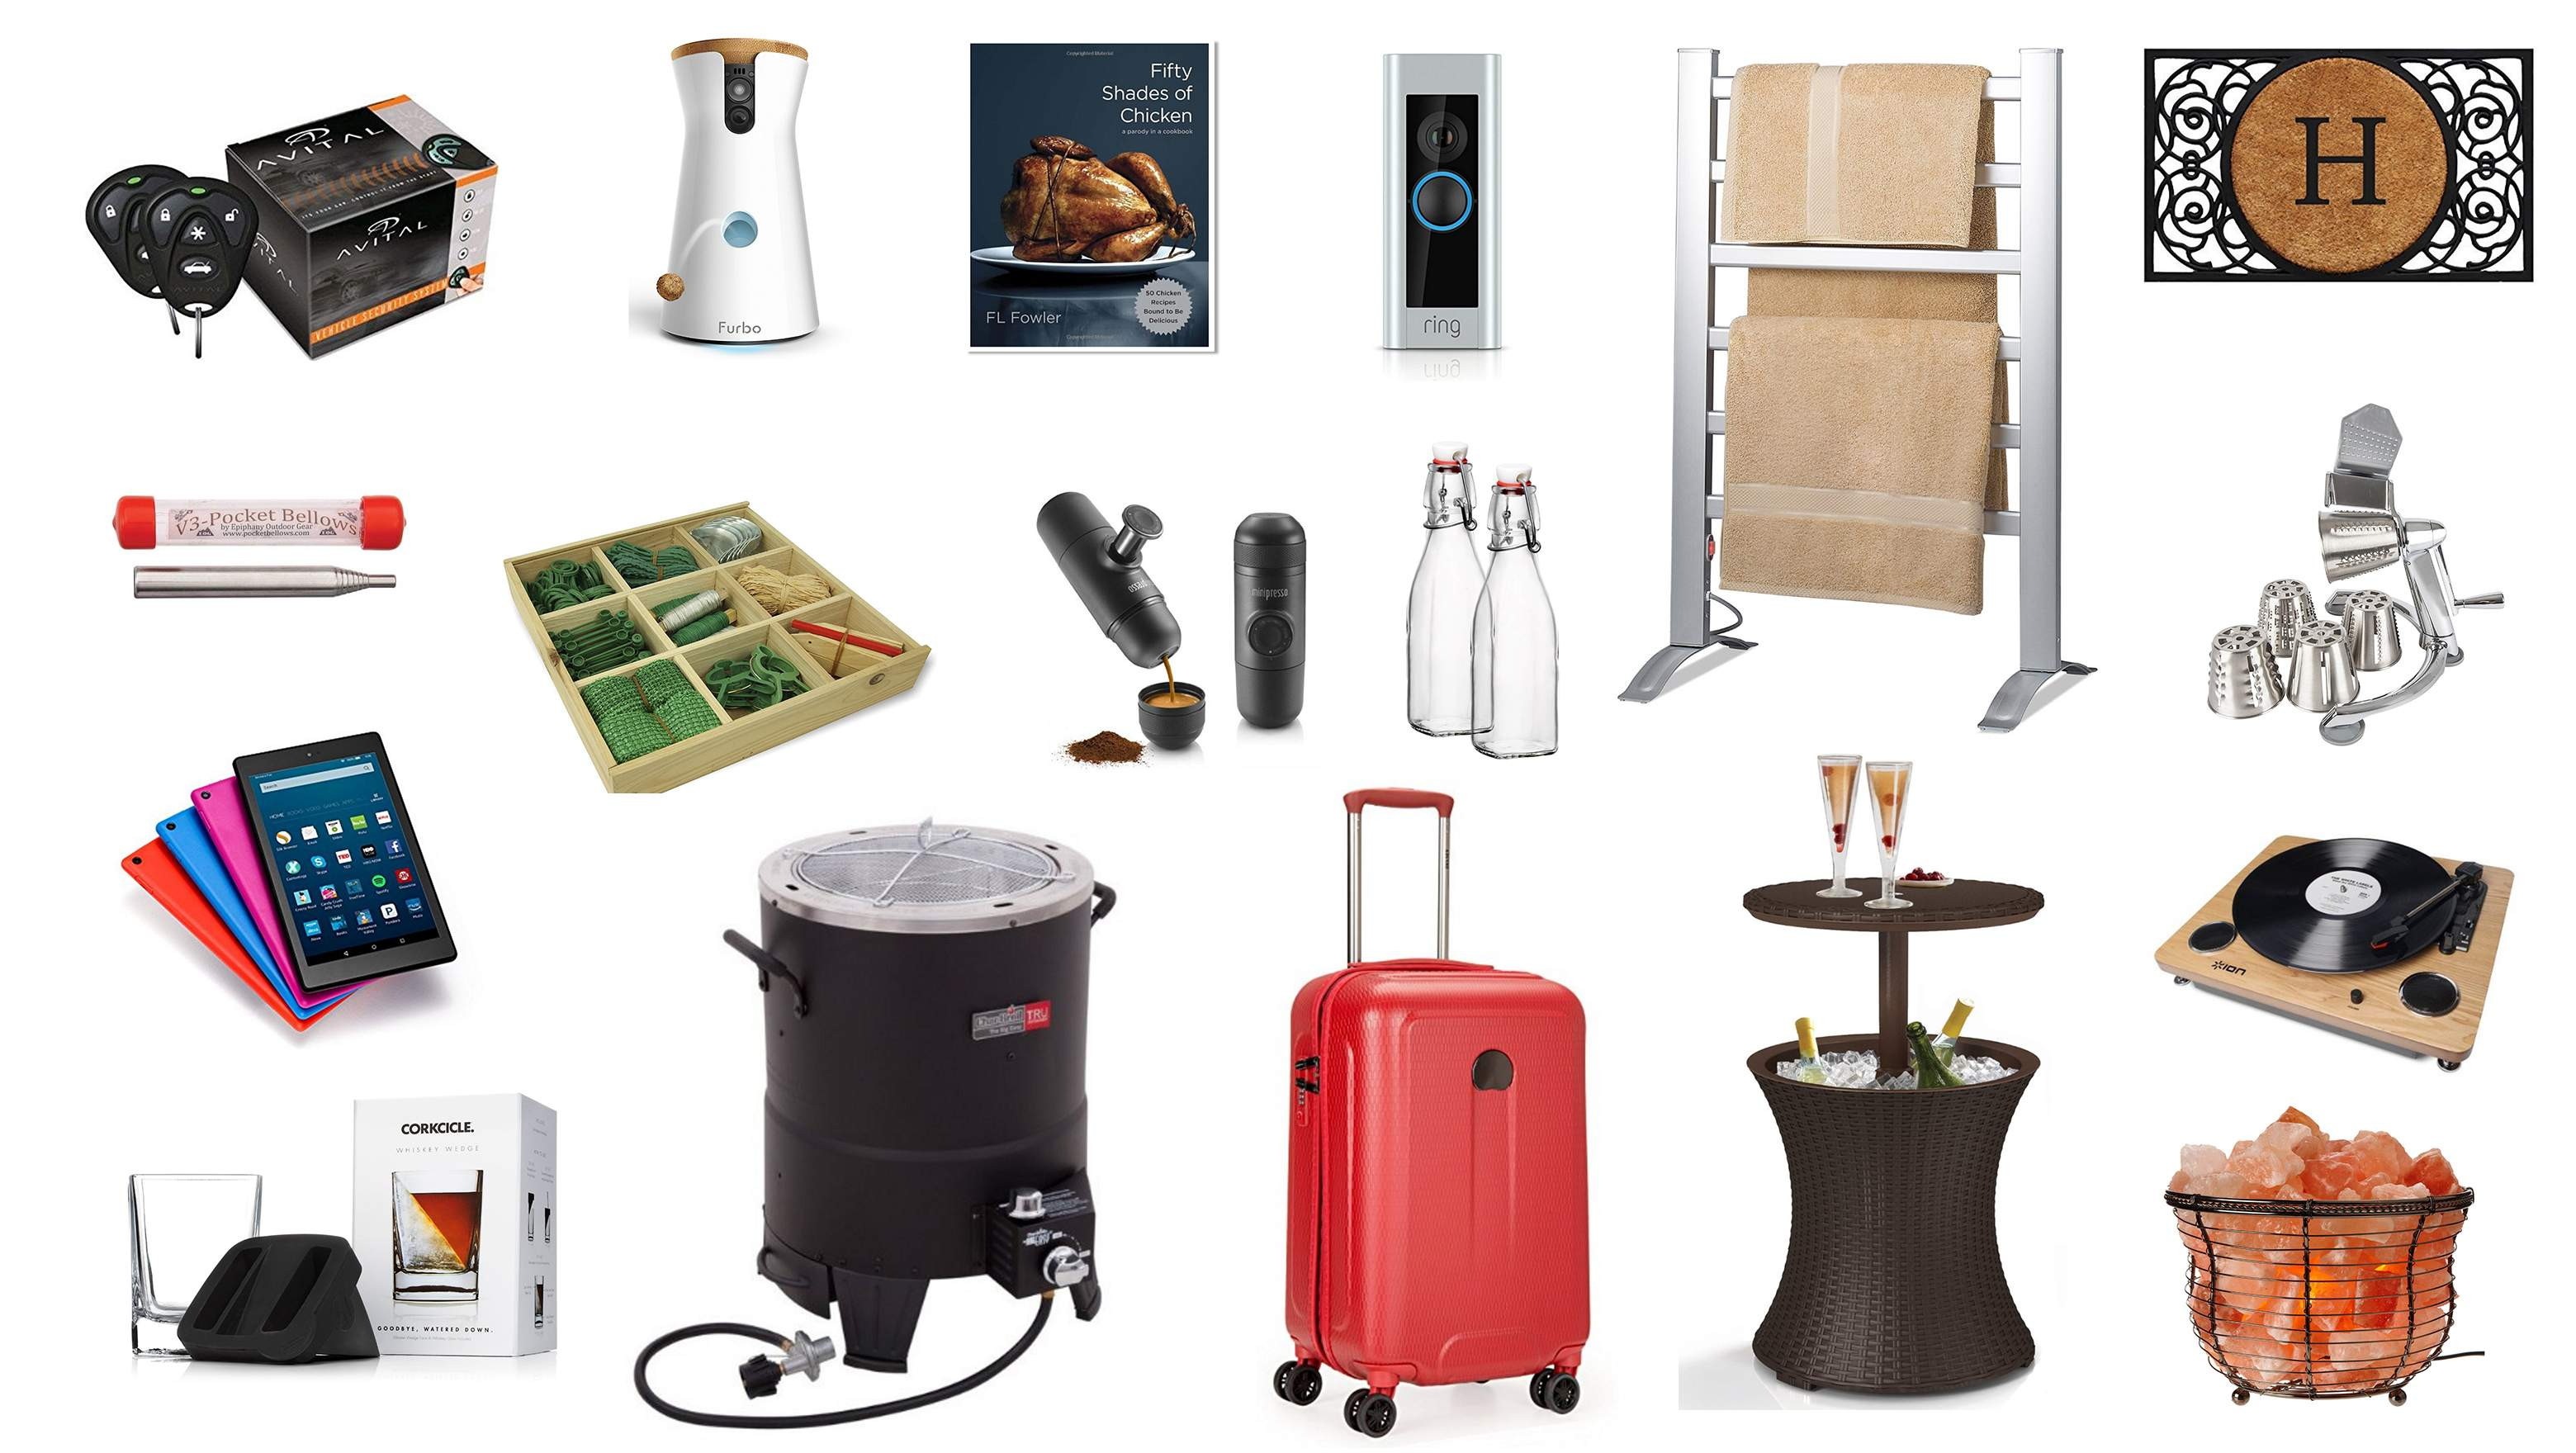 Great Holiday Gift Ideas  Top 50 Best Gifts for Your Parents